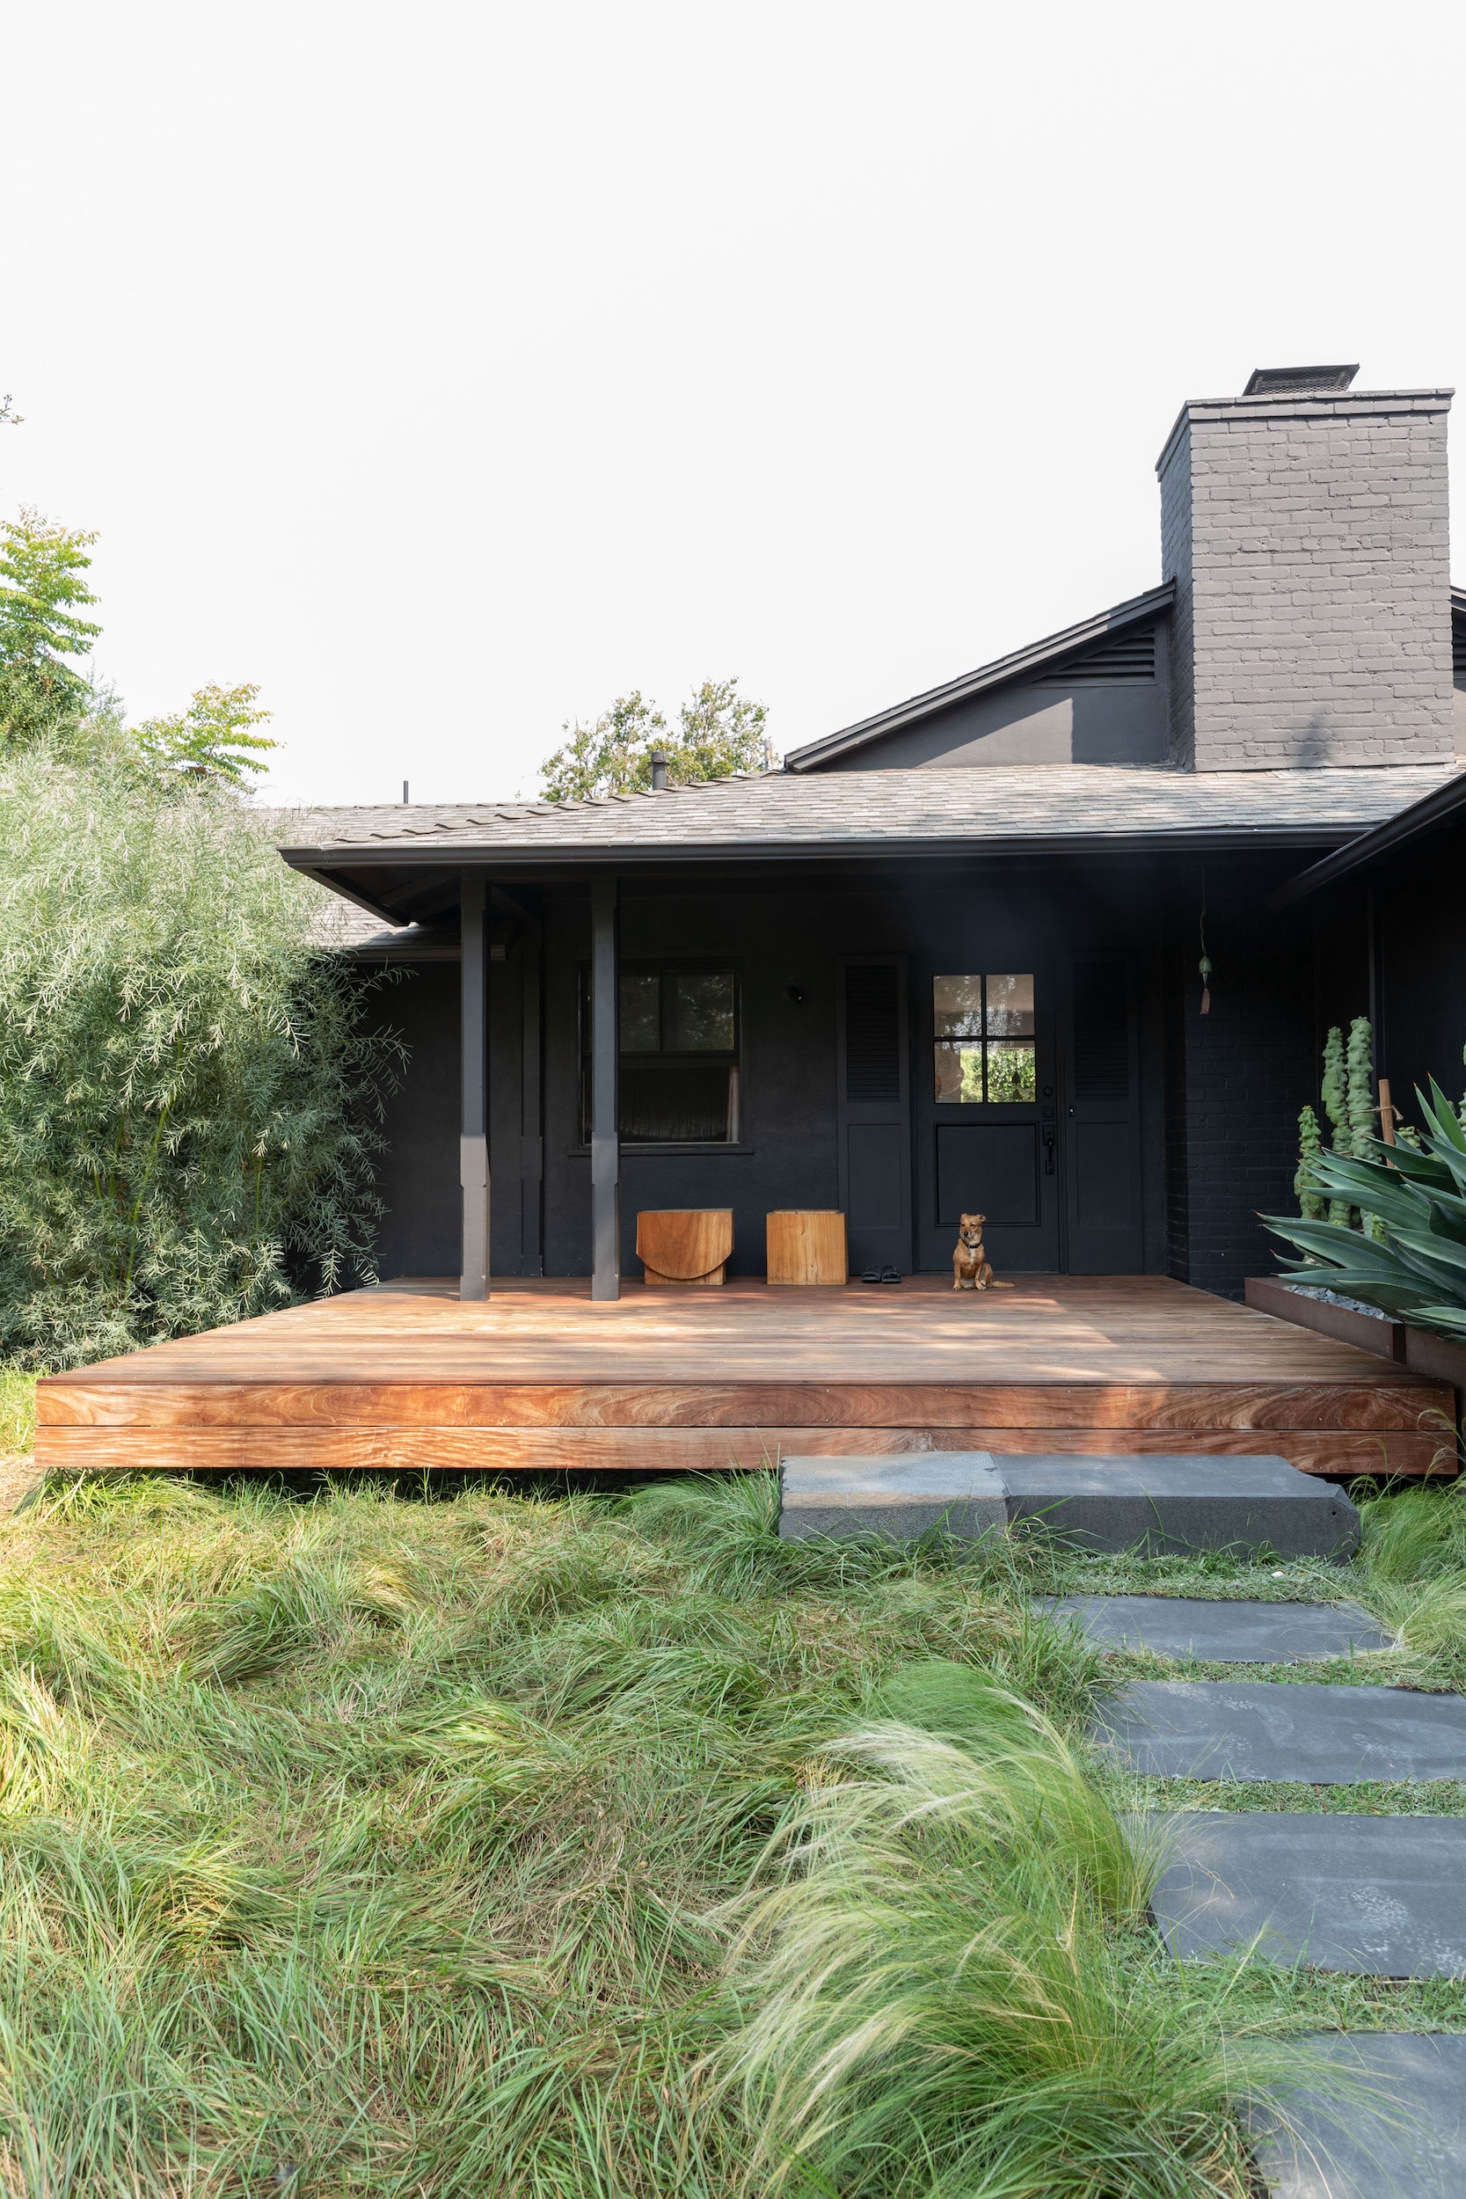 A tousled lawn and black exterior immediately let visitors know this isn't an average suburban home.